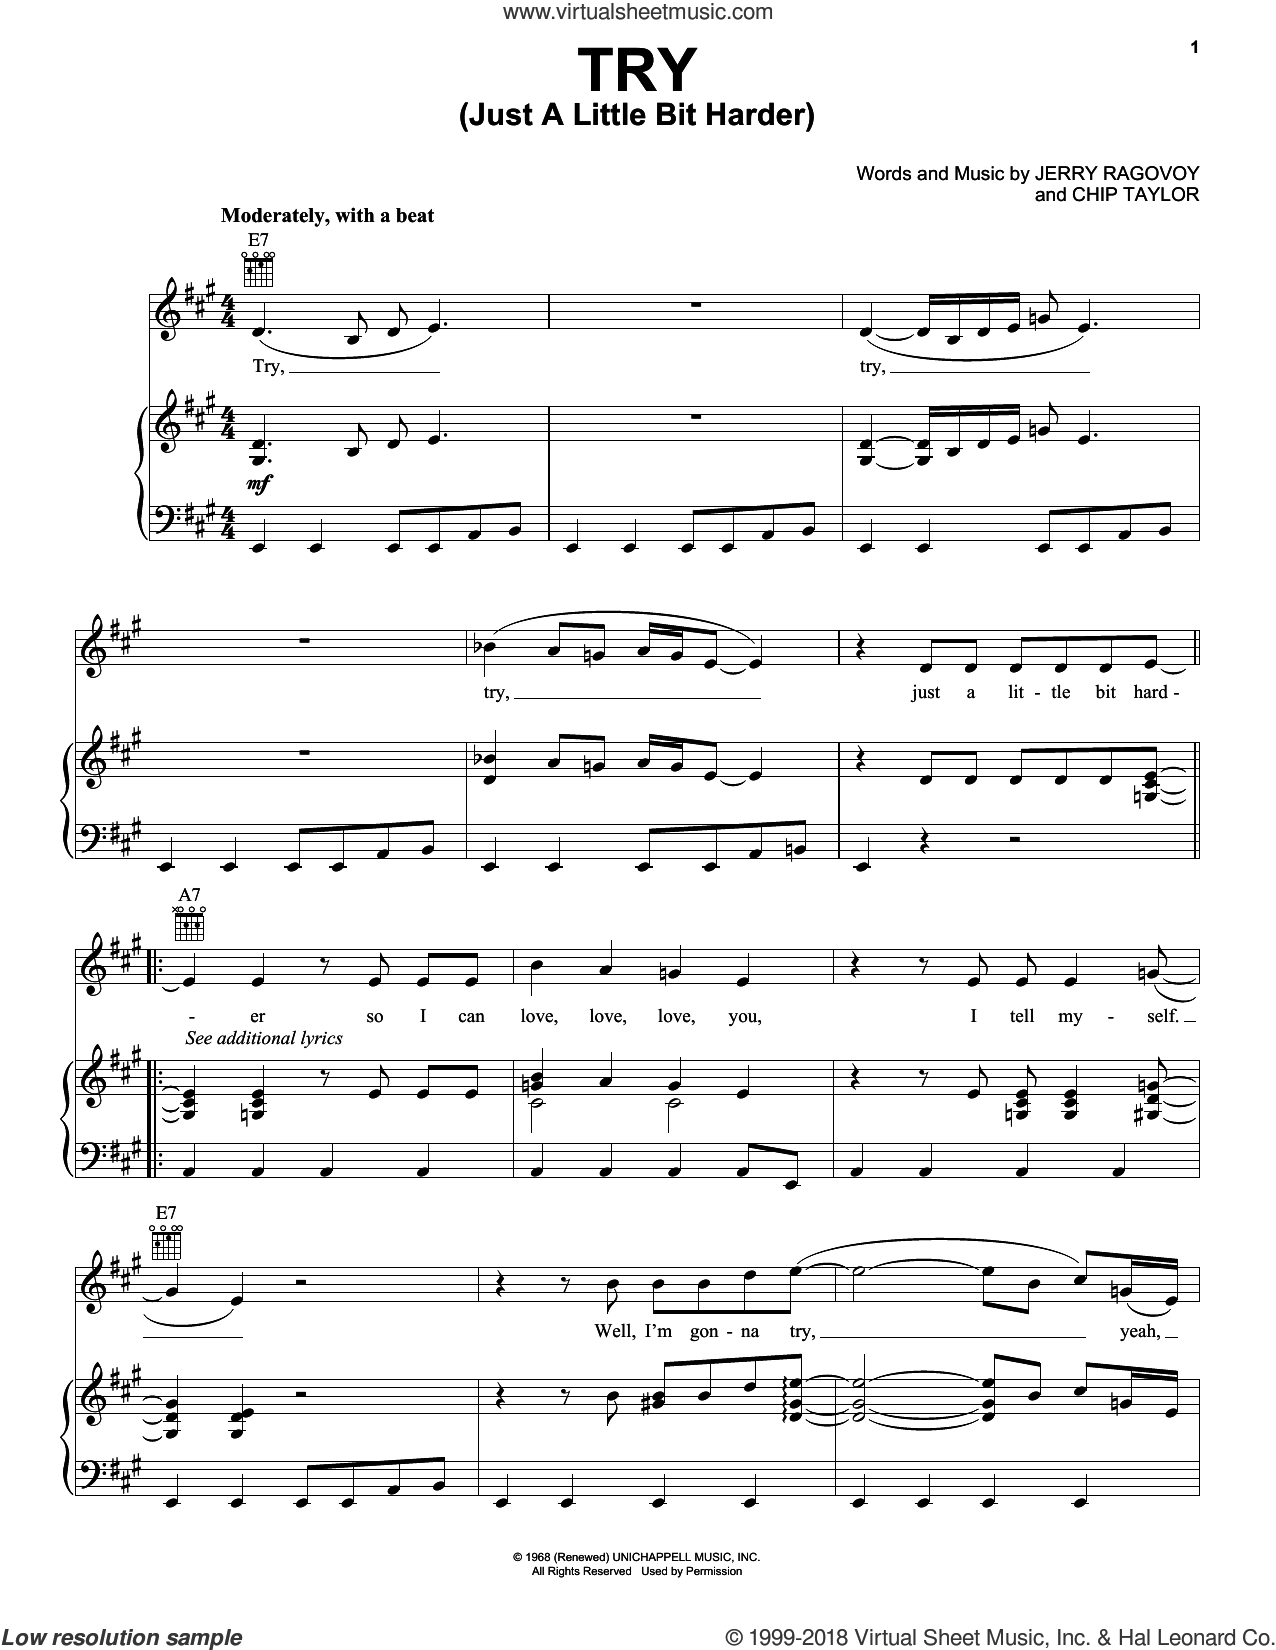 Try (Just A Little Bit Harder) sheet music for voice, piano or guitar by Jerry Ragovoy, Janis Joplin and Chip Taylor. Score Image Preview.